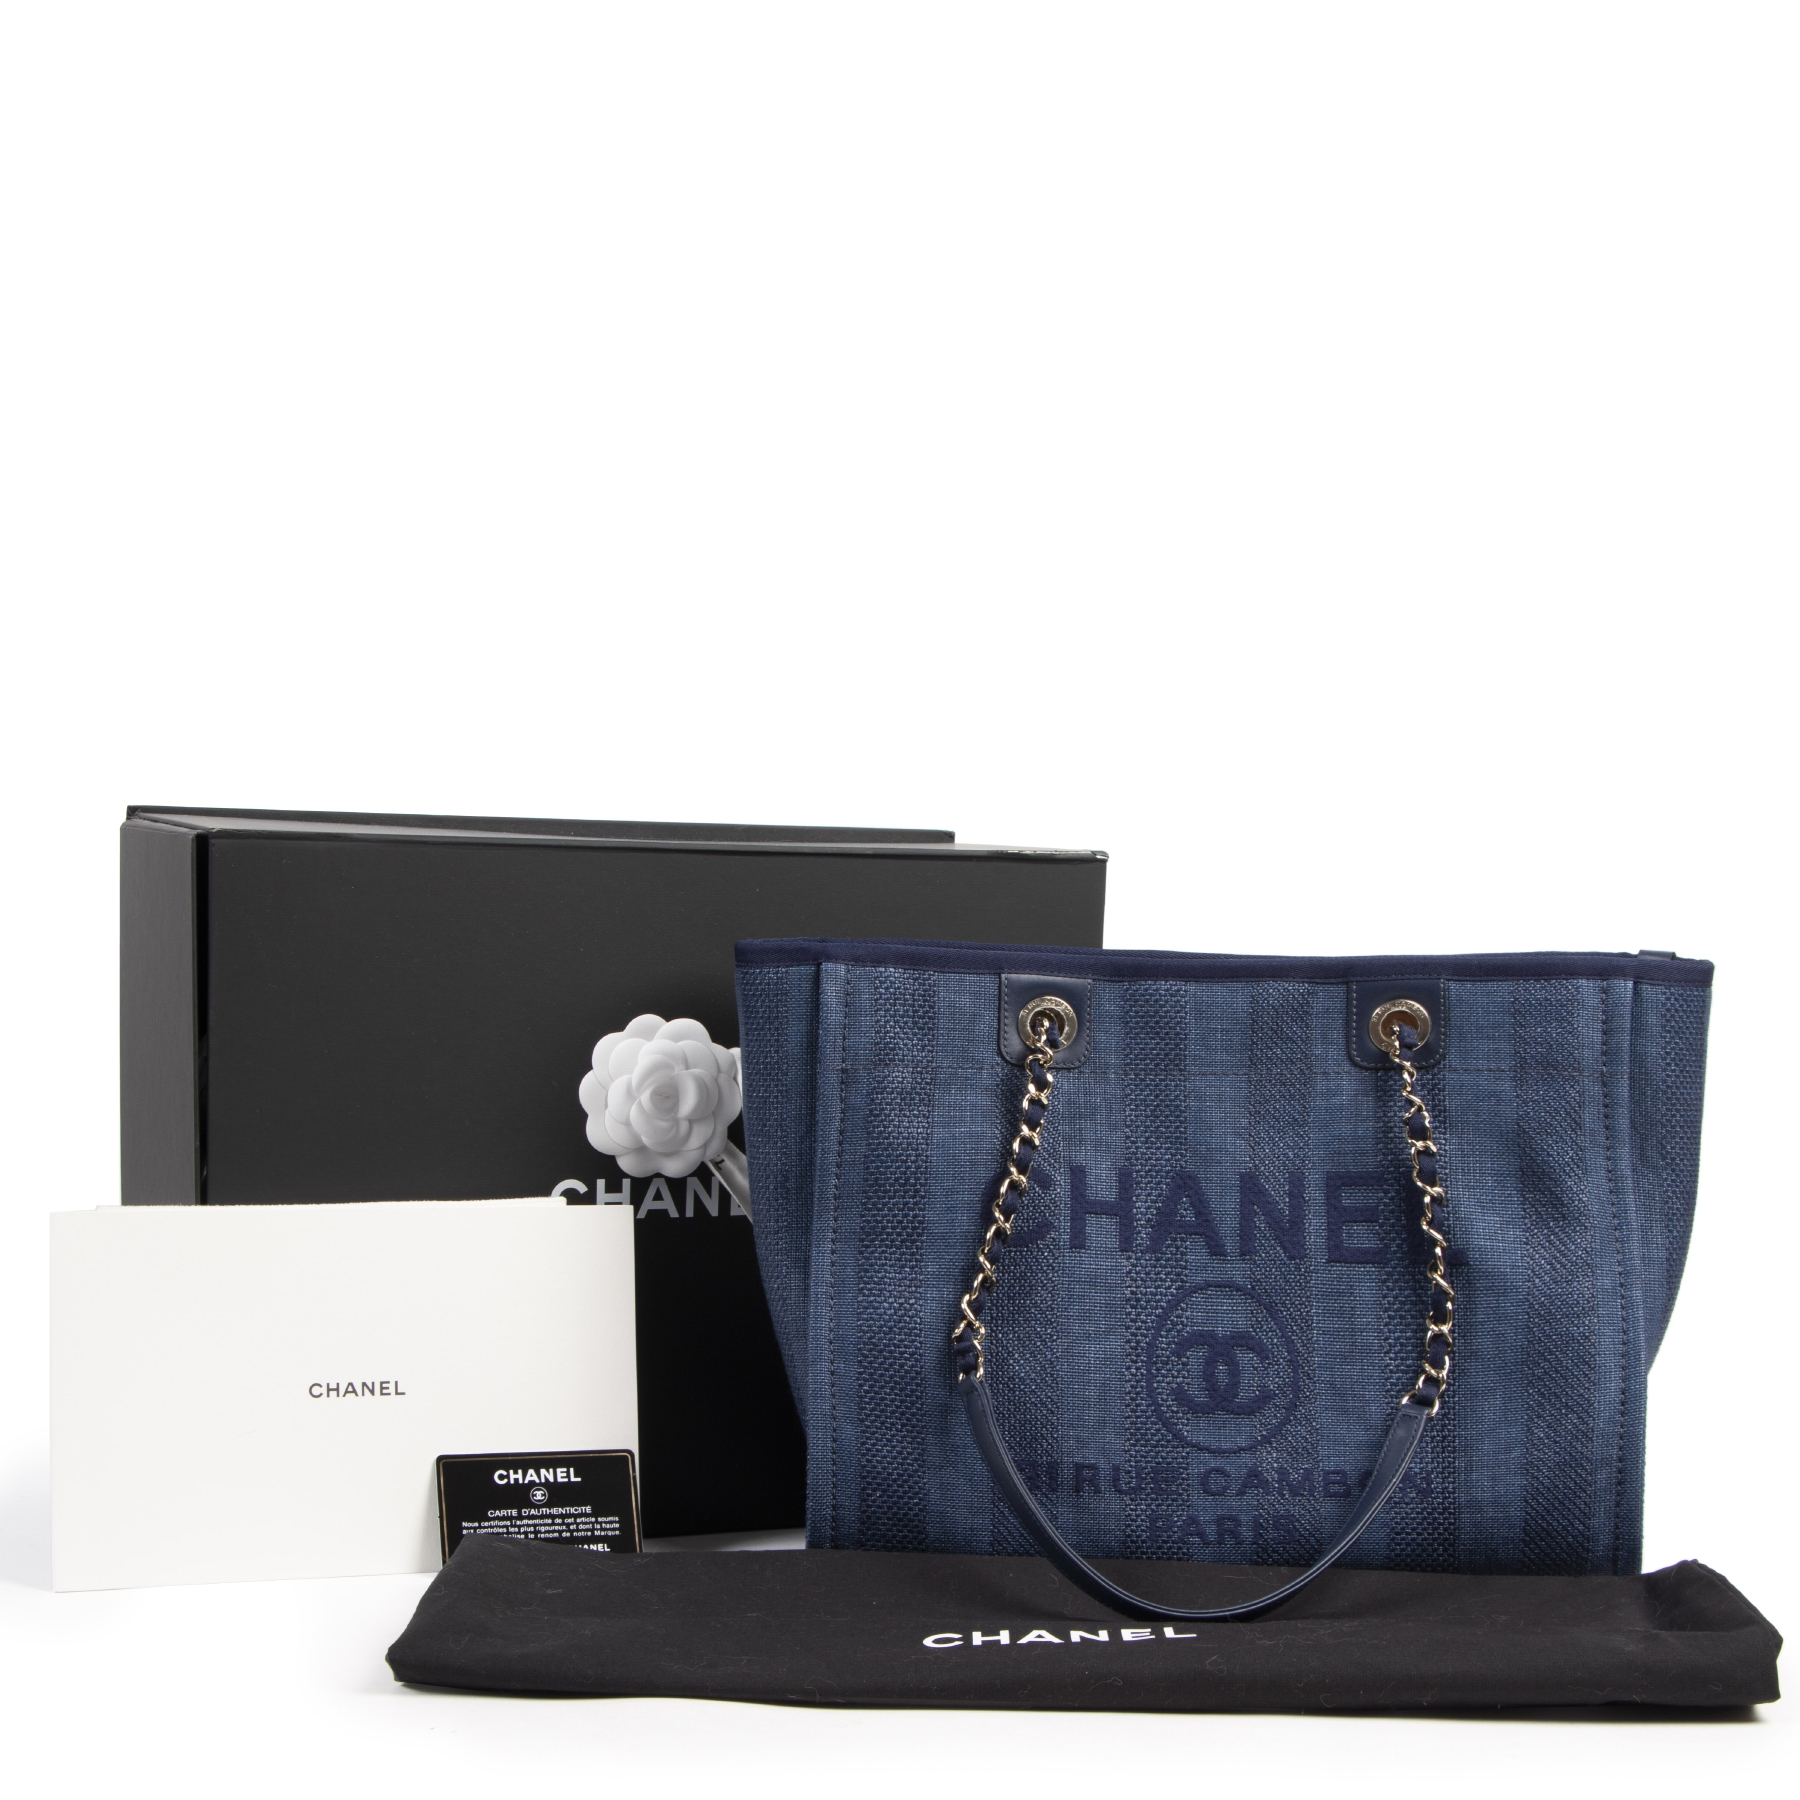 Chanel Small Blue Deauville Tote Bag